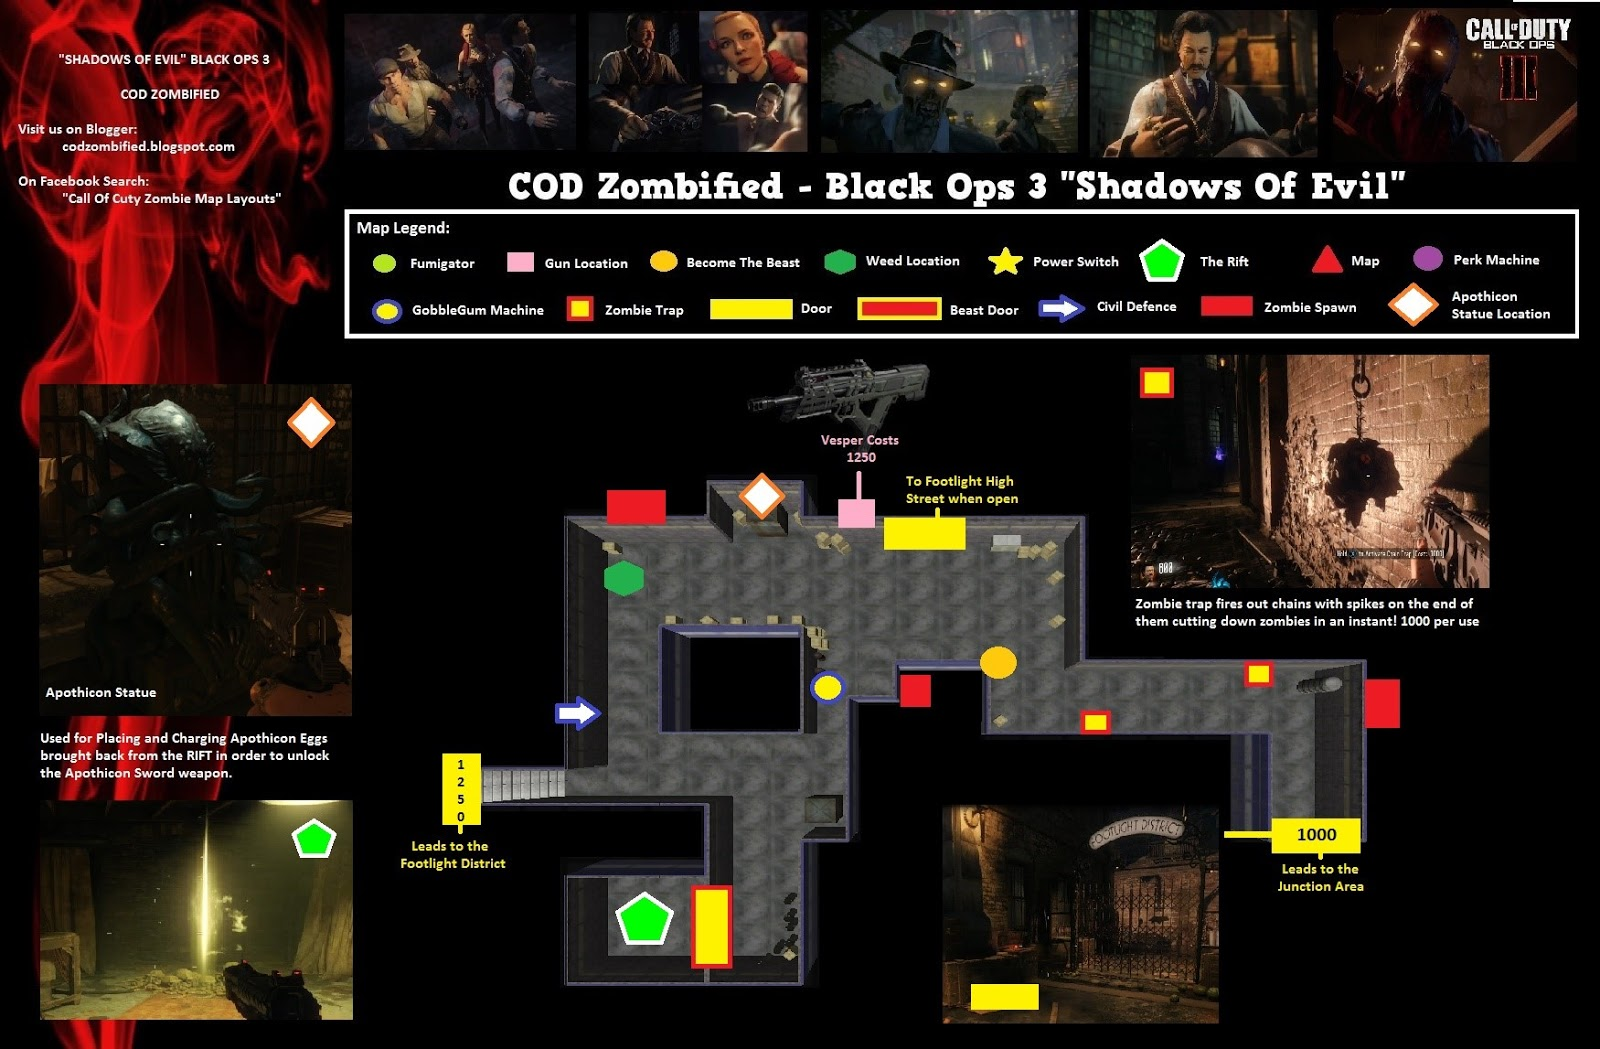 Zombified - Call Of Duty Zombie Map Layouts, Secrets, Easter ... on call of duty ghosts world map, call of duty: modern warfare 3, call of duty modern warfare 3, call of duty 4: modern warfare, grand theft auto, call of duty zombies minecraft server, call of duty: world at war, medal of honor, batman: arkham city, call of duty: black ops ii, gears of war, call of duty elite, call of duty ghosts extinction maps, call of duty mw maps, call of duty zombies anime, call of duty game maps, call of duty modern warfare 2, halo: reach, call of duty zombie hospital, call of duty 2, call of duty president, small call of duty maps, call of duty 3, call of duty wallpaper, call of duty zombies all characters, call of duty zombies map packs, call of duty: modern warfare 2, cod bo1 zombies maps, red dead redemption, call of duty zombies movie, call duty black ops 2 zombies buried, call of duty nacht der untoten map, call of duty ghosts zombies,